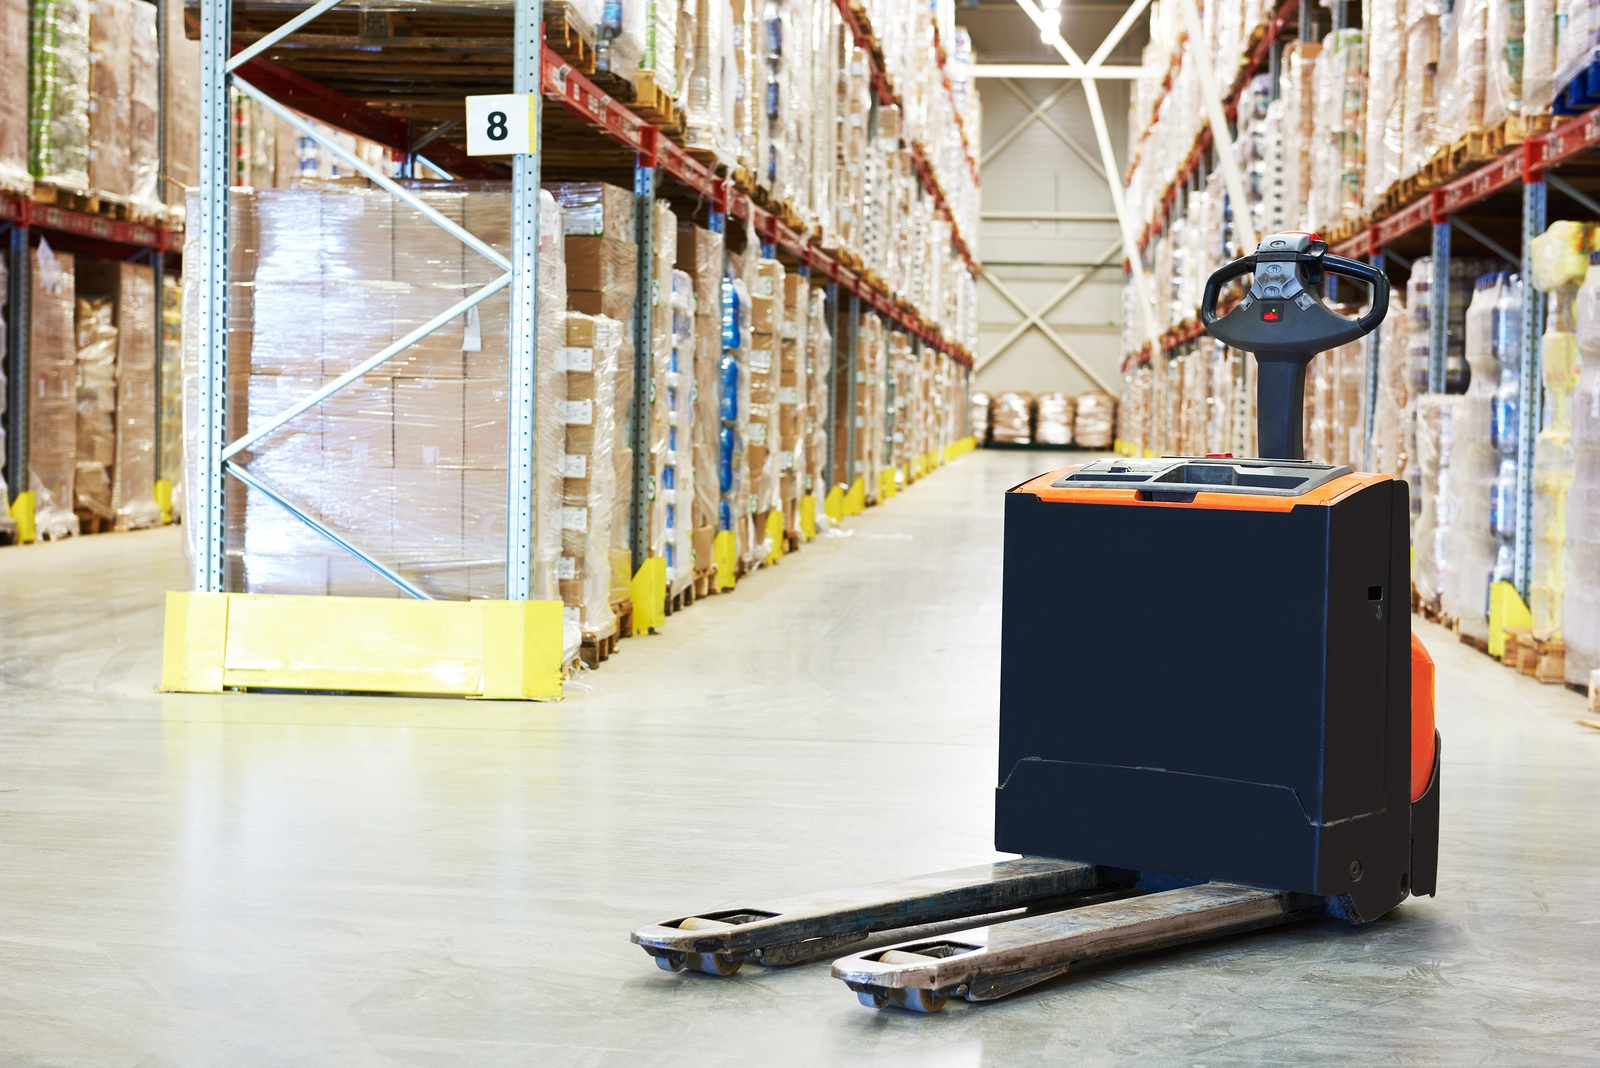 pallet truck in a warehouse